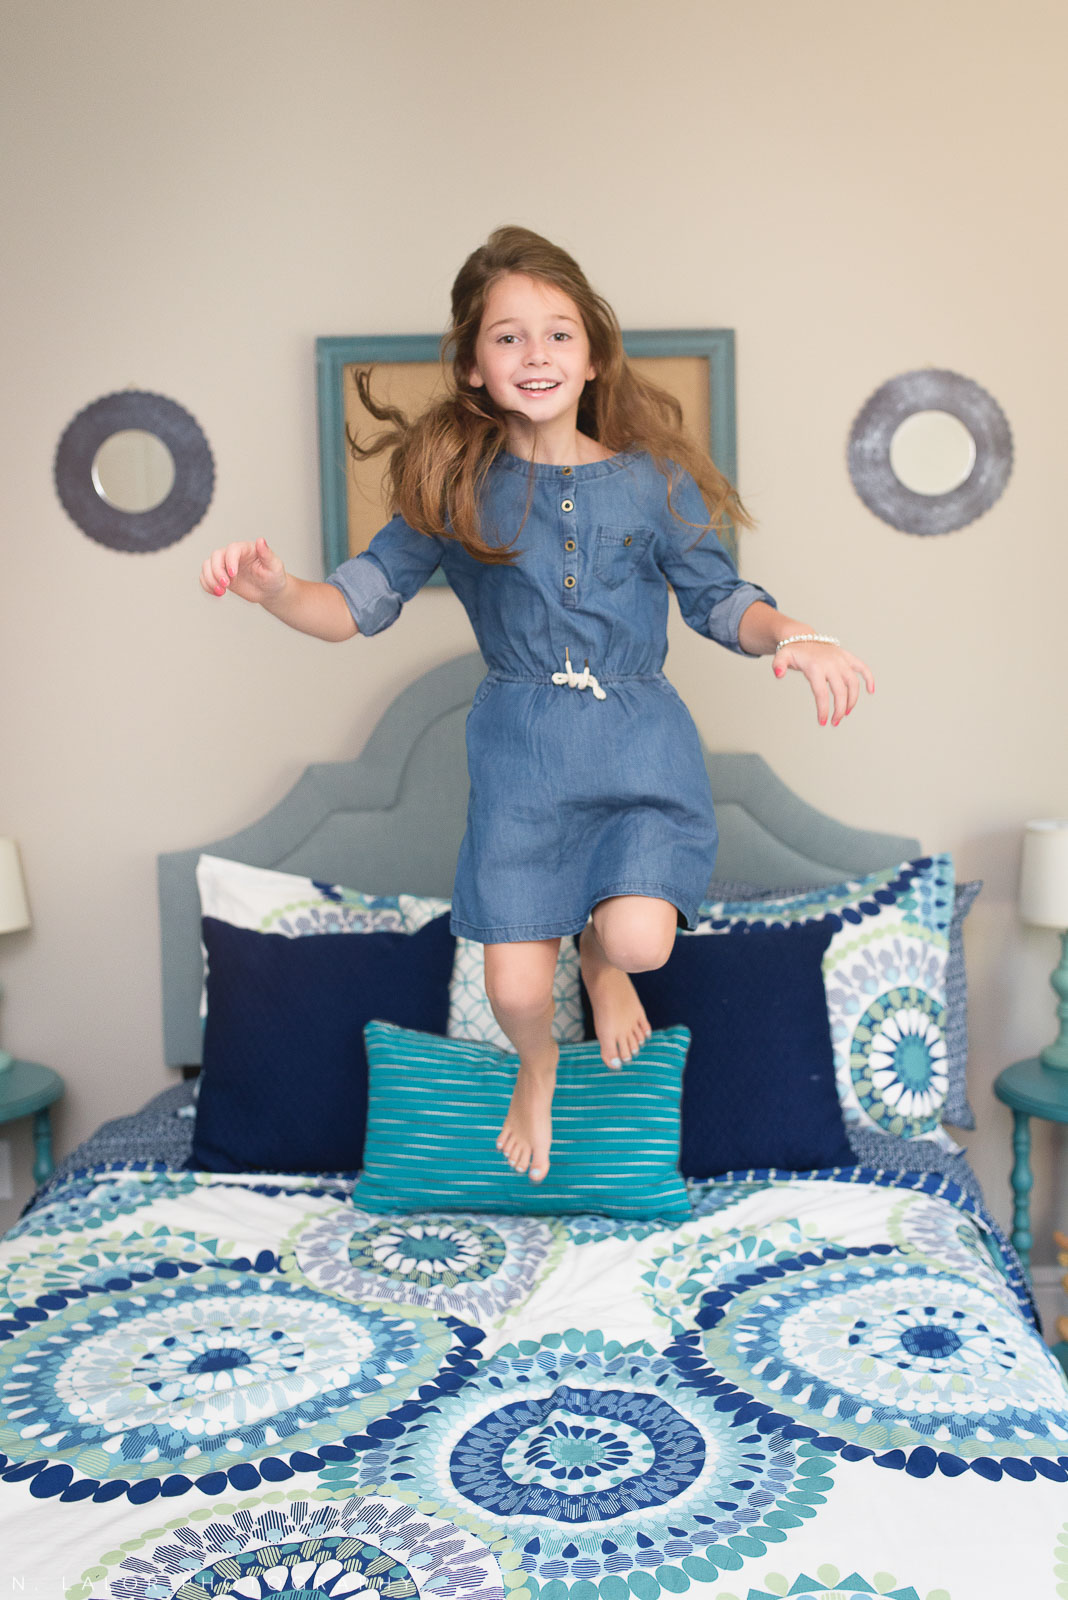 Jumping on the bed. Lifestyle portrait by N. Lalor Photography.